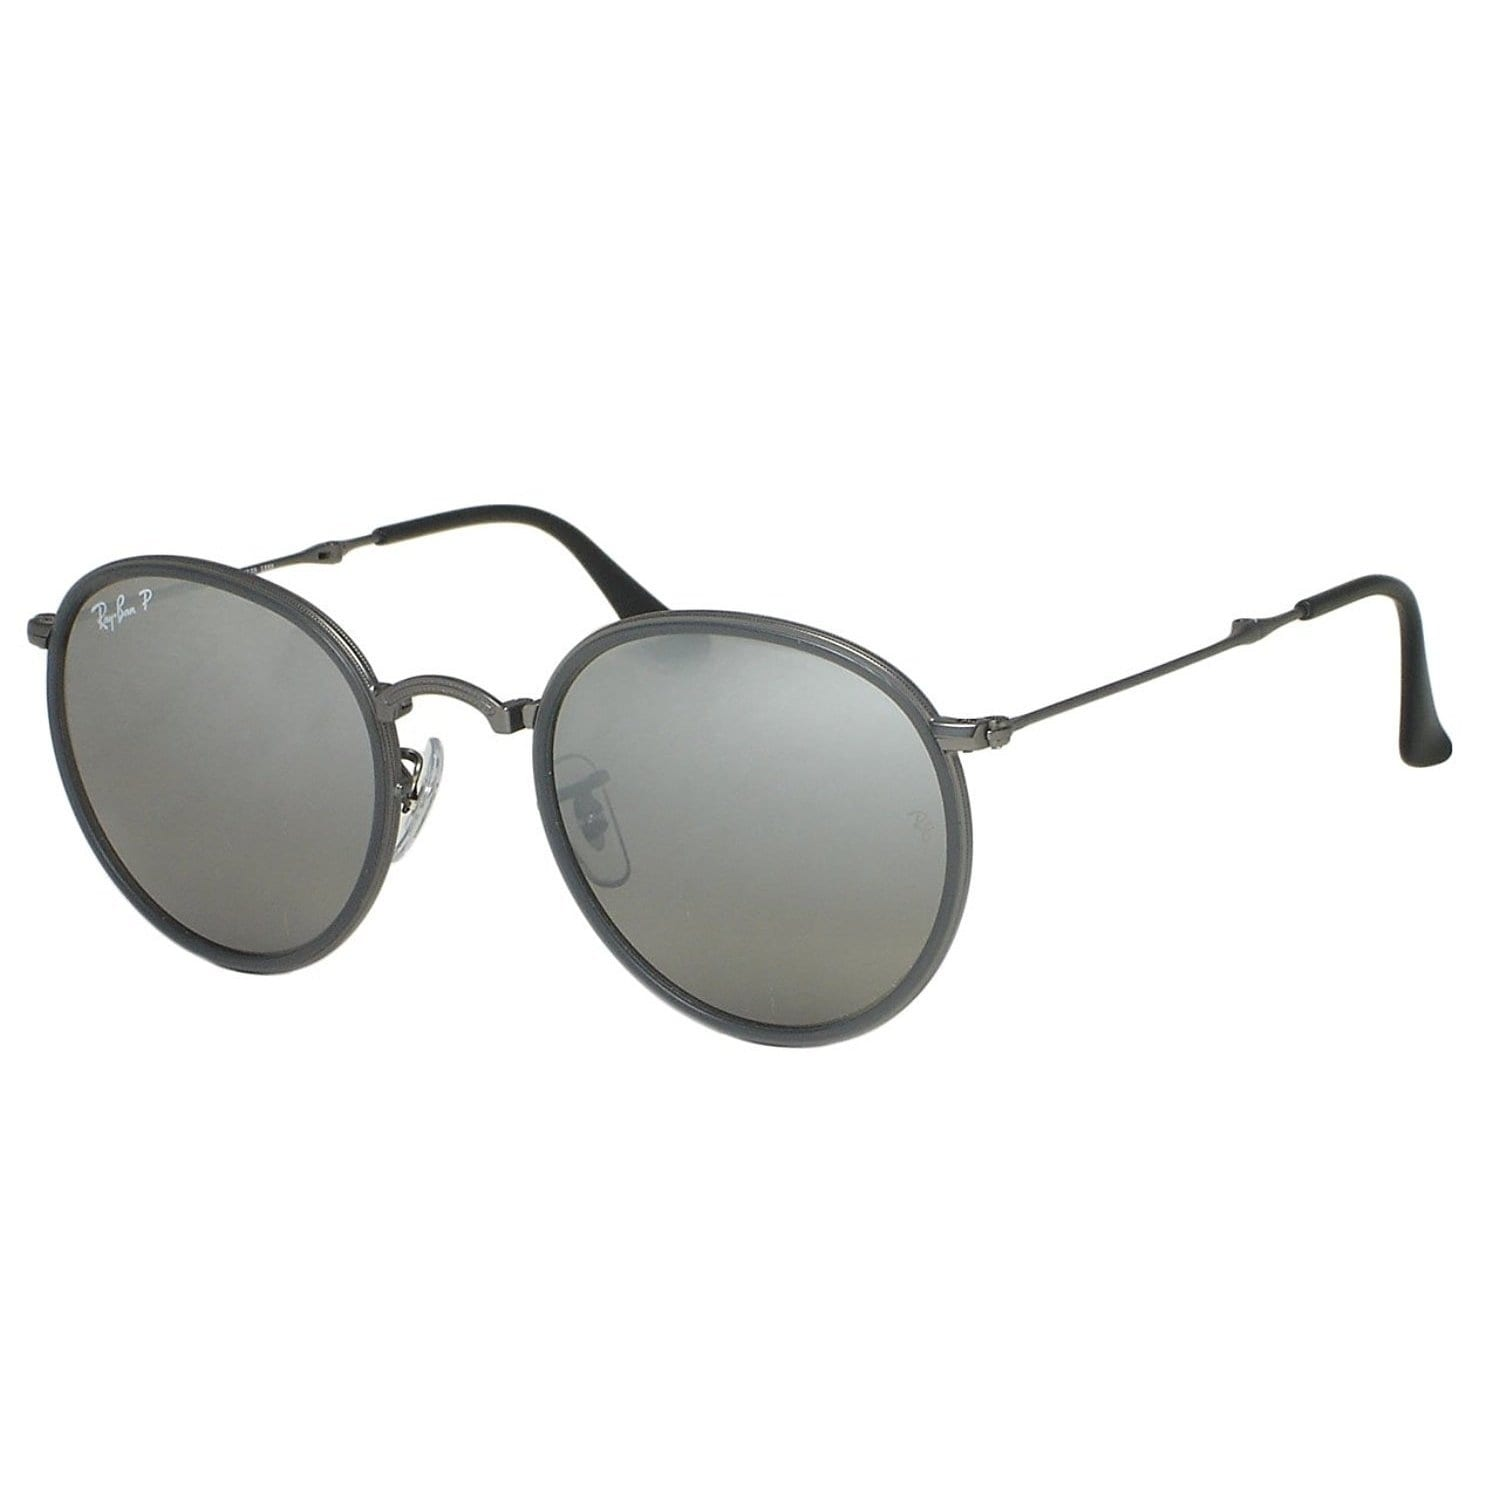 50a78706f9 Shop Ray-Ban Round Folding RB3517 029 N8 Unisex Gunmetal Frame Polarized  Silver Gradient Lens Sunglasses - Free Shipping Today - Overstock - 15079508